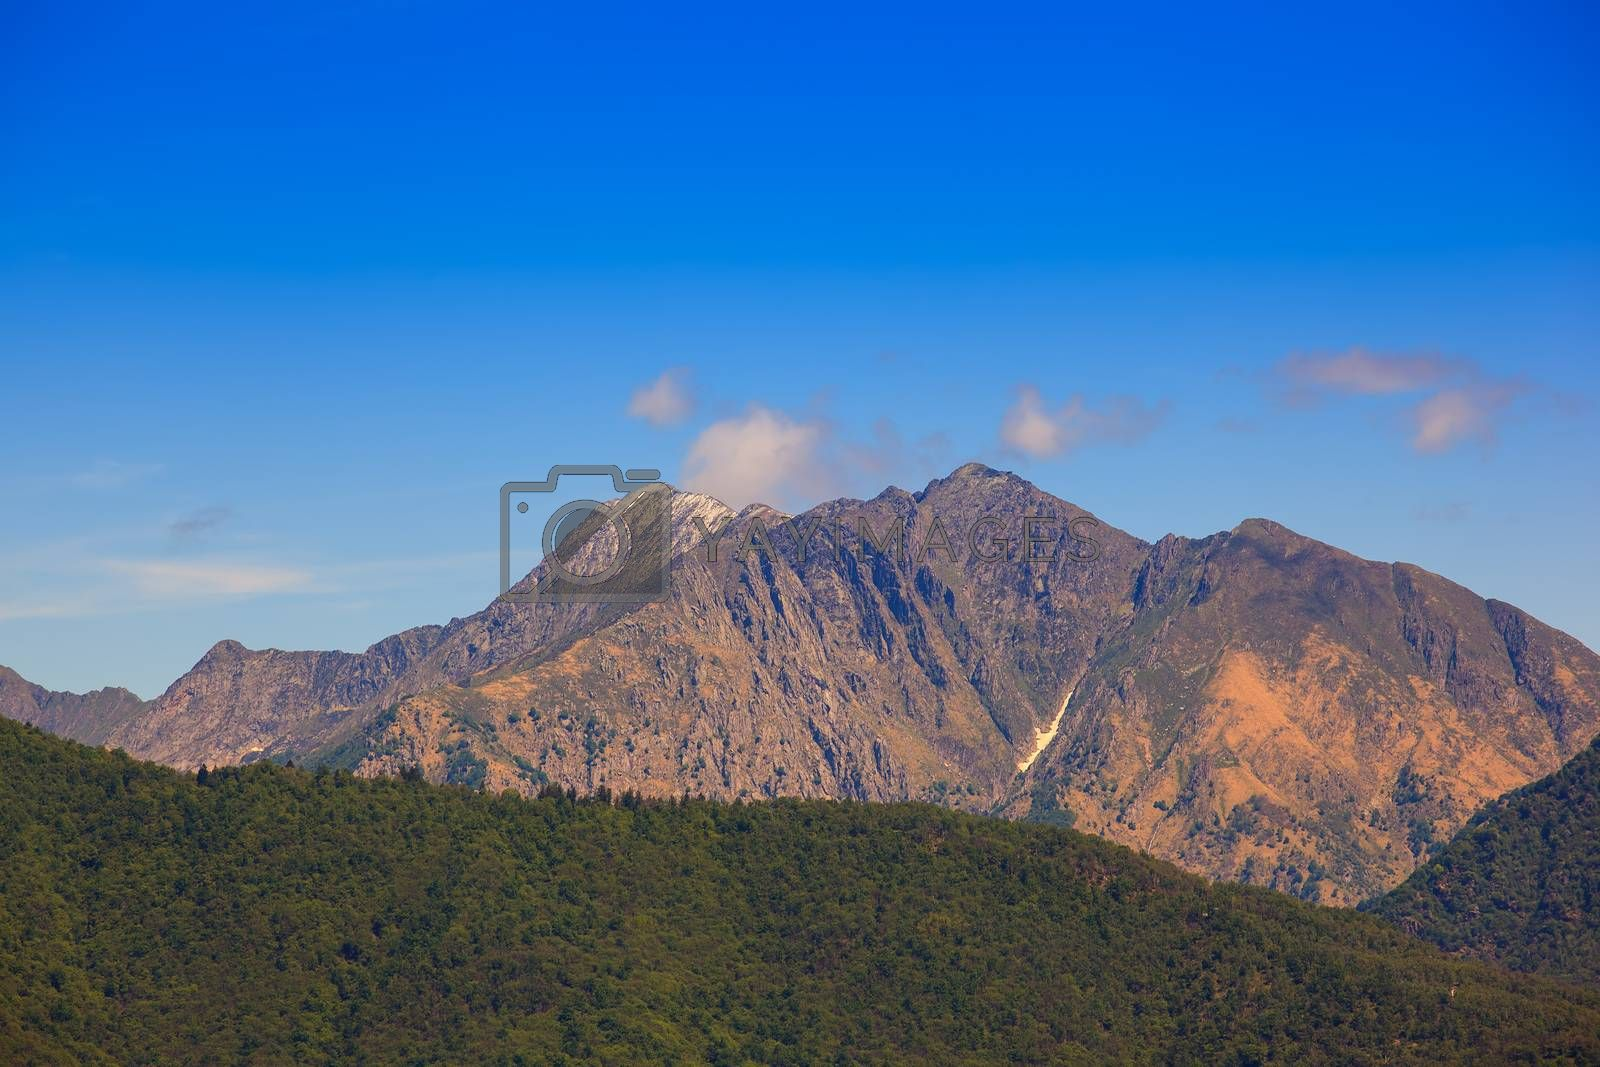 View of the Zeda mountain in Italy